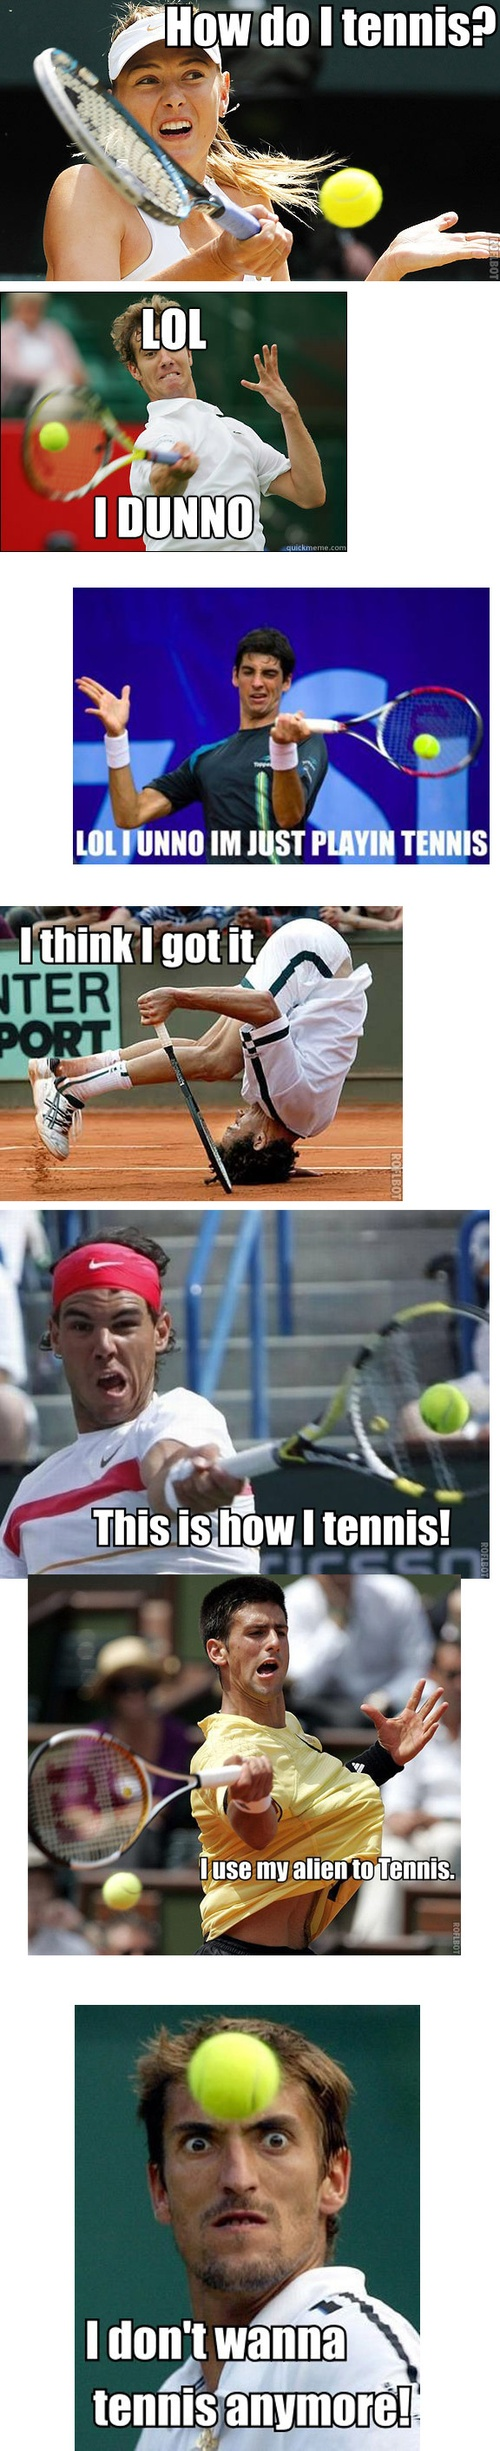 Teach Me How to Tennis....  laughed way to hard reading this